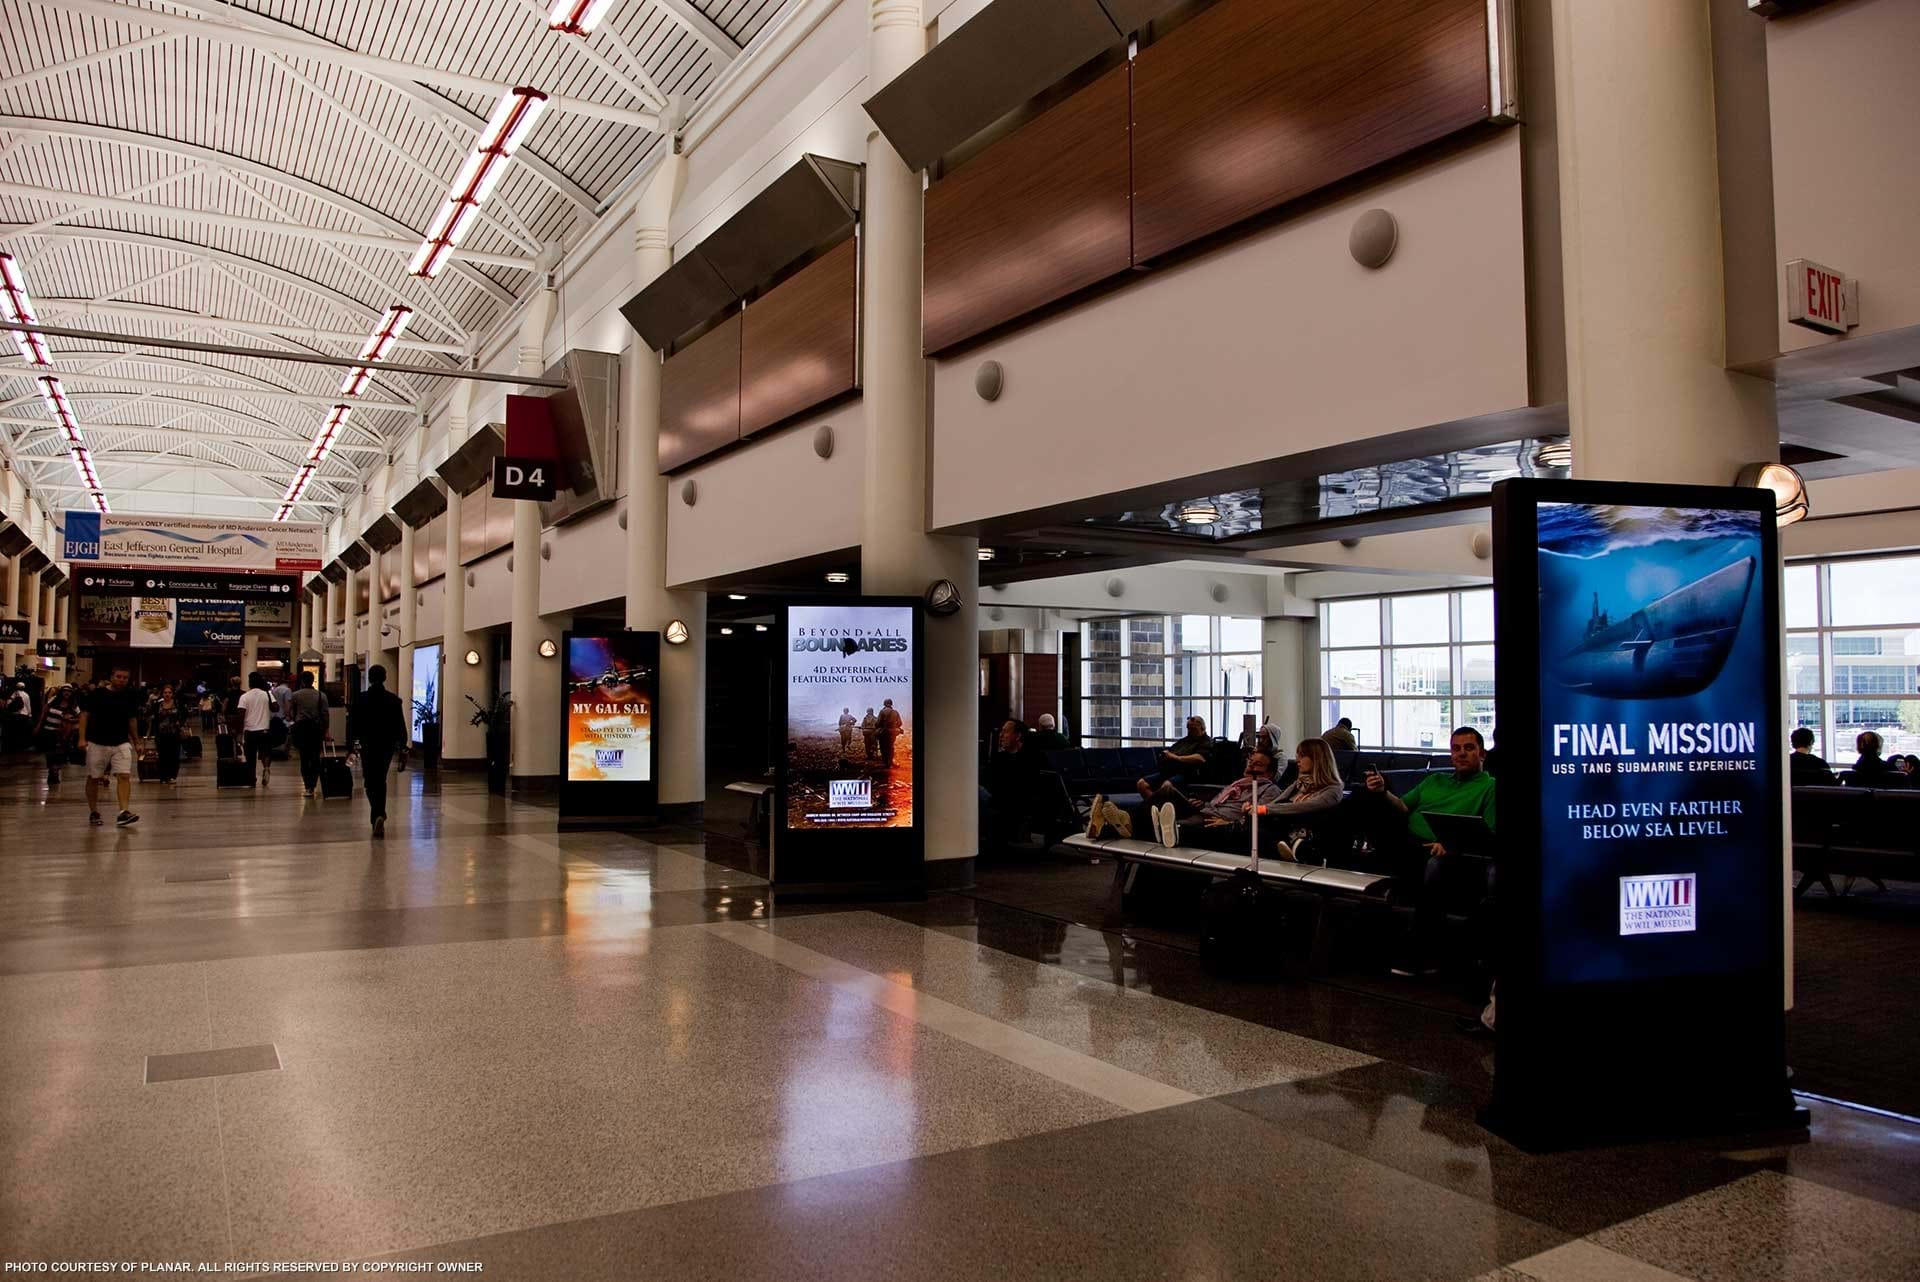 New Orleans Airport Image